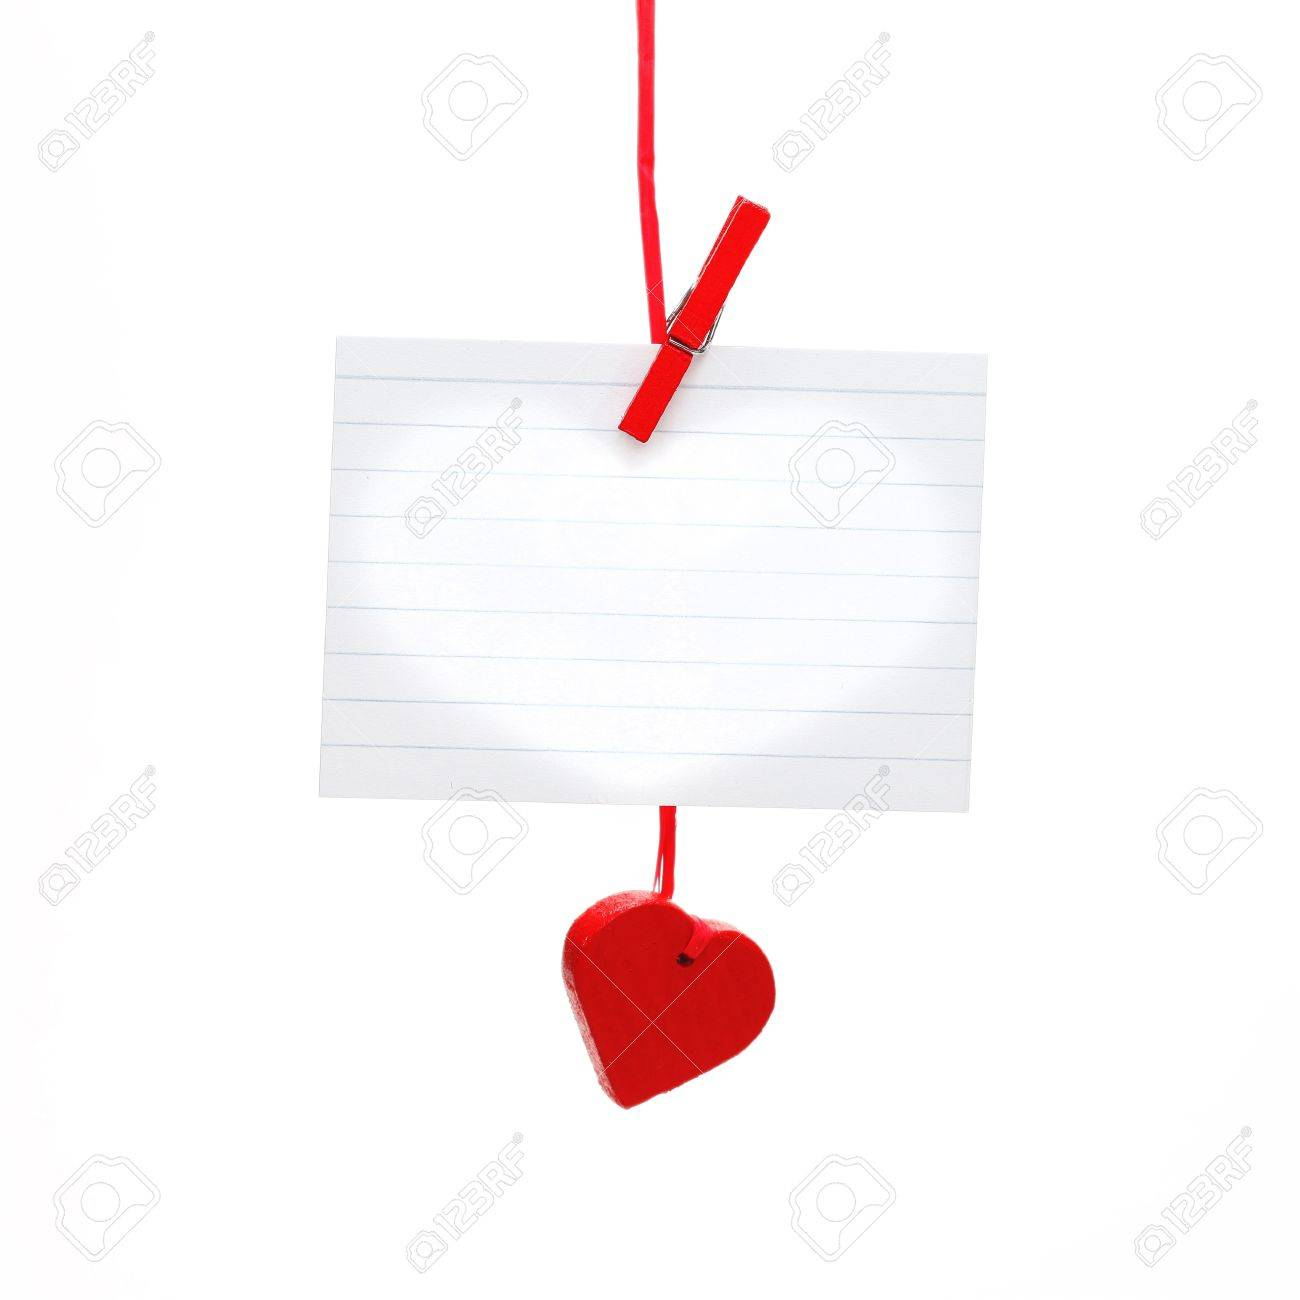 Empty sheet and heart on rope isolated on white. Stock Photo - 11930290